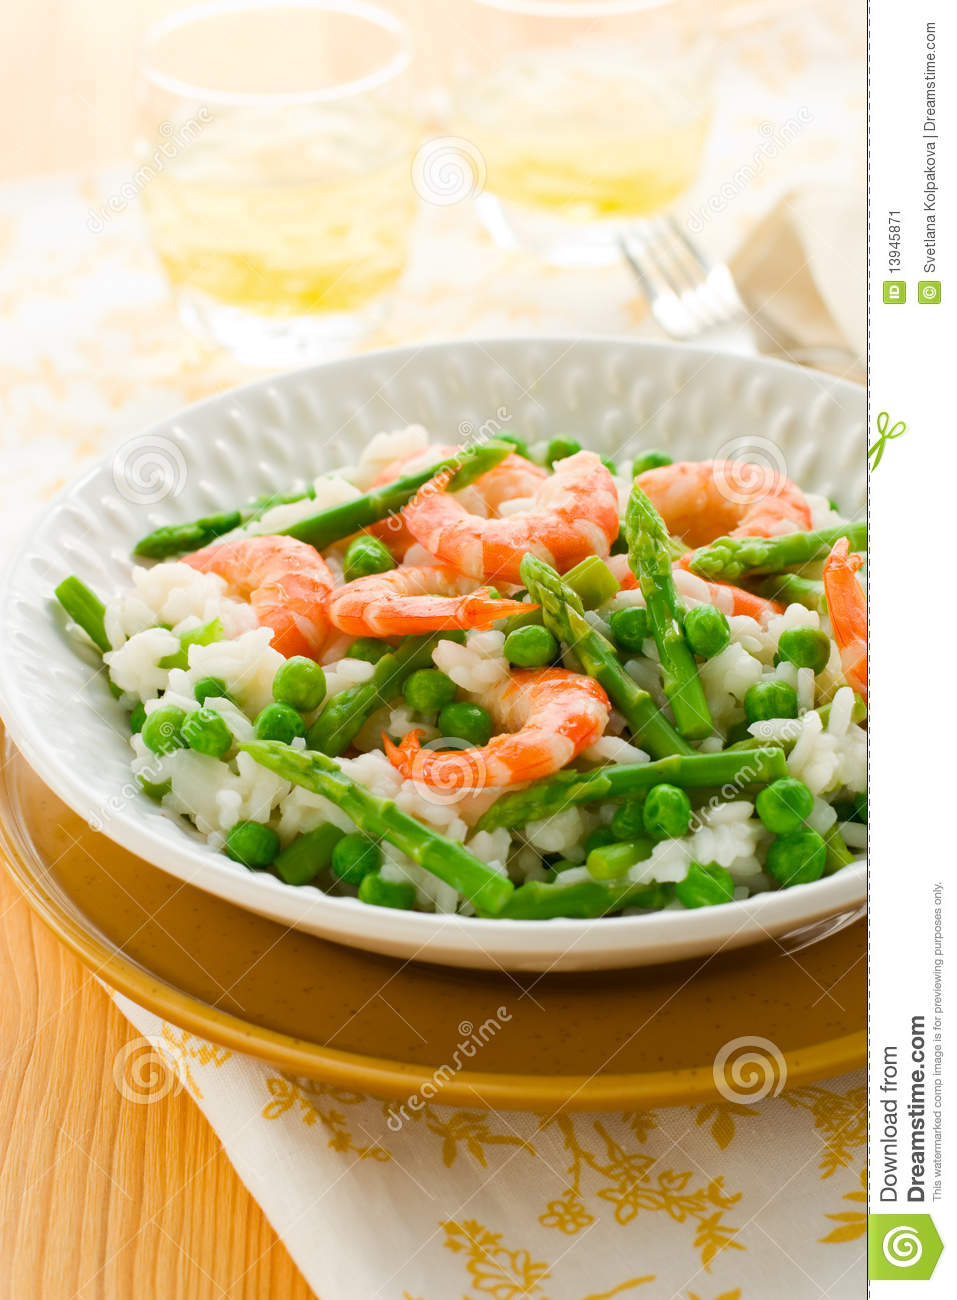 Asparagus Shrimp Risotto Stock Image - Image: 13945871